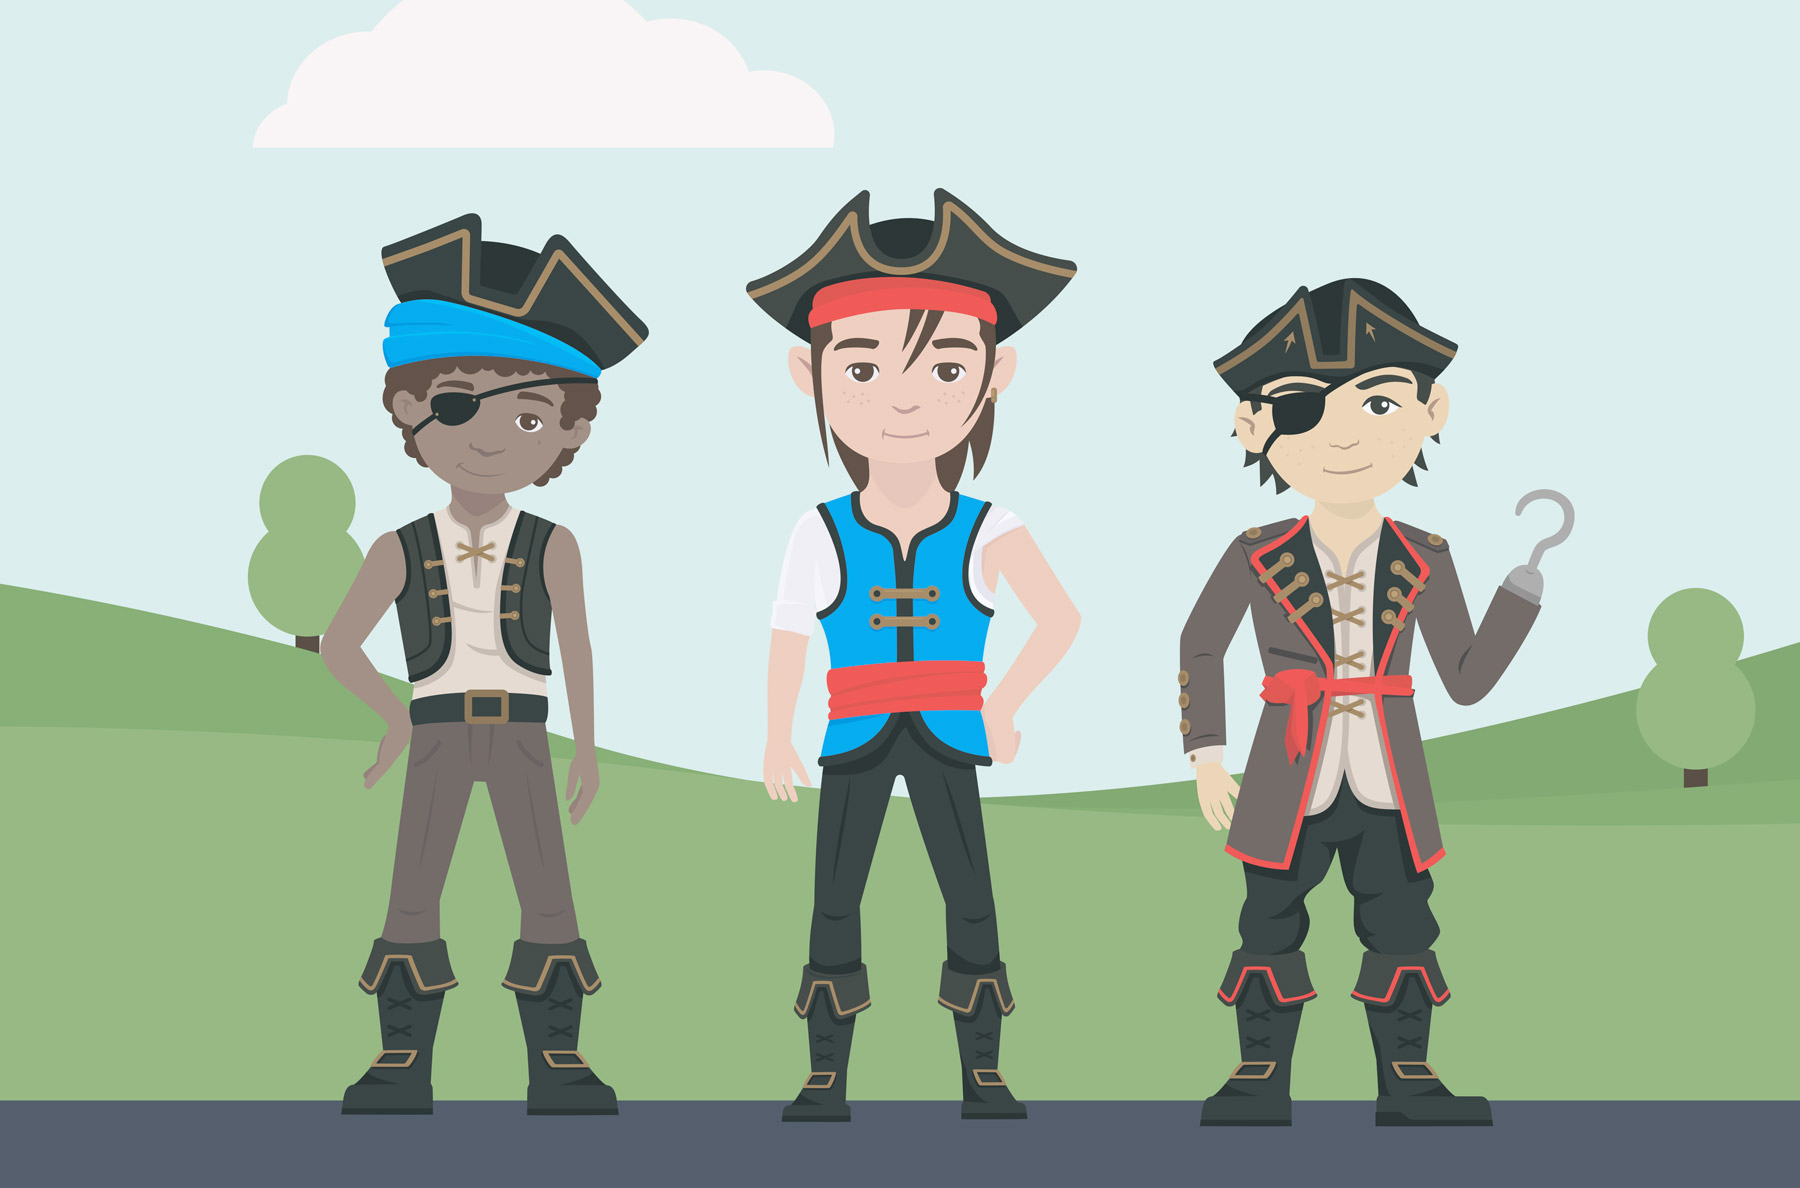 Safe Animal Squad pirate illustrations design by Sinclair Creative Agency